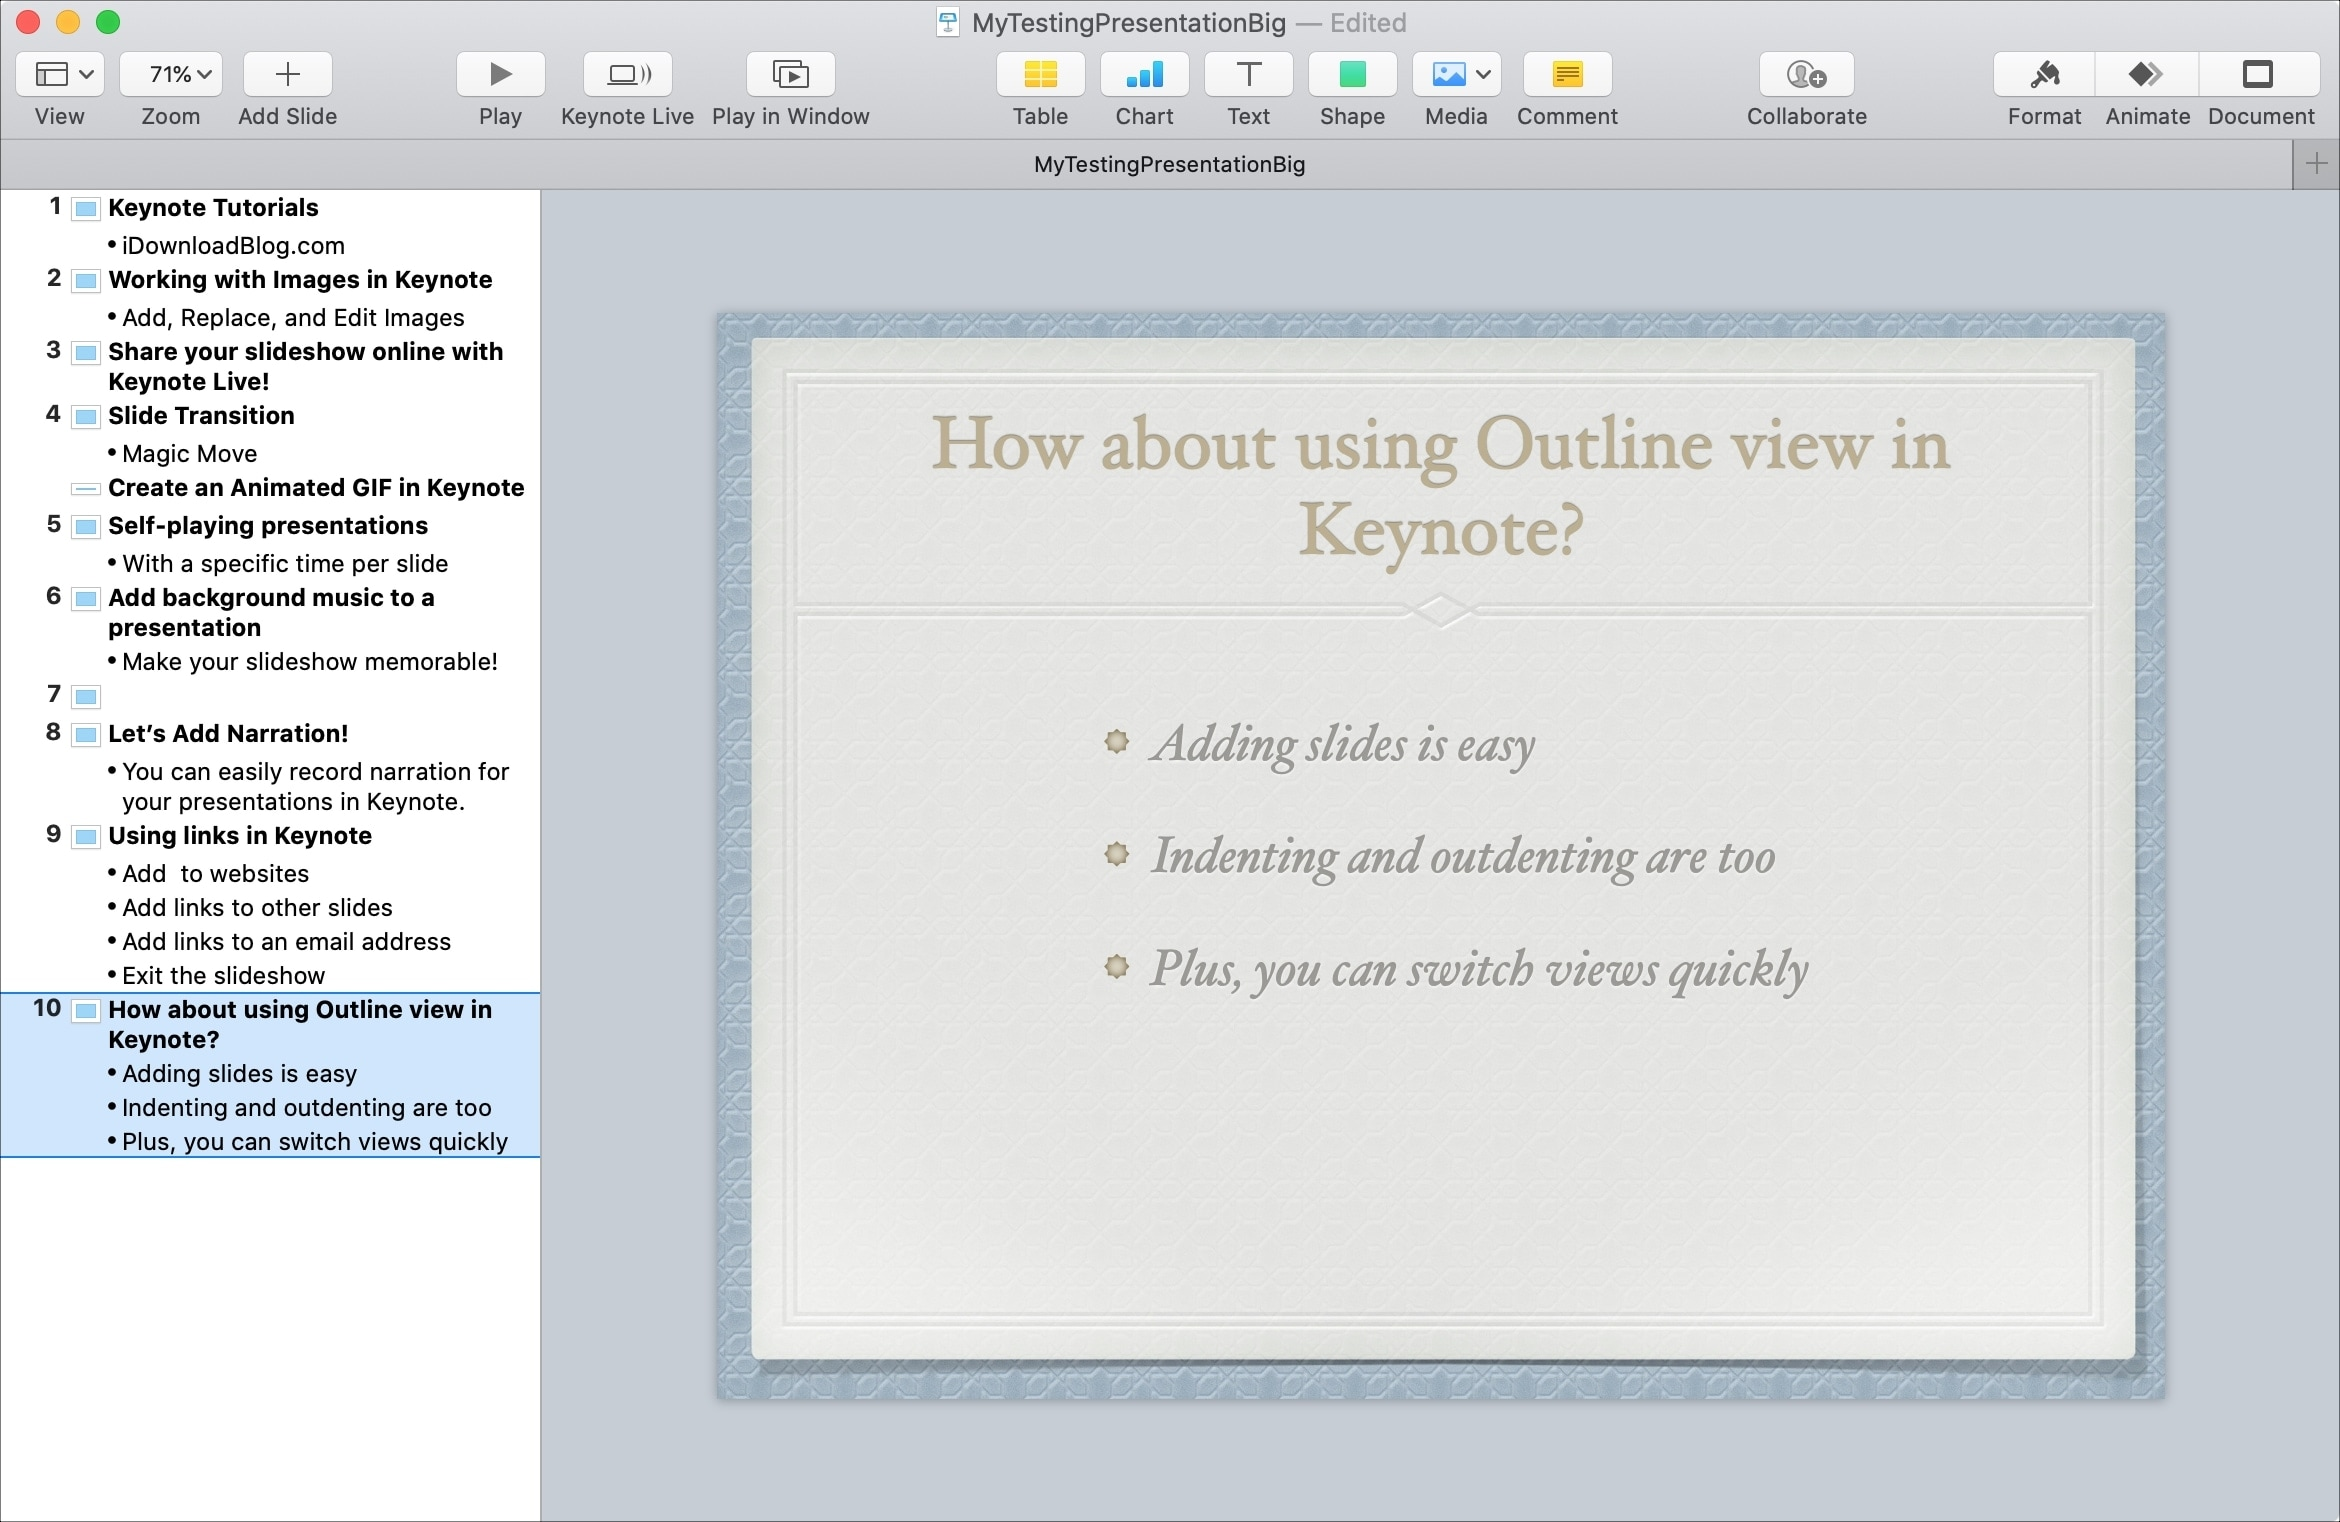 Use Outline View in Keynote on Mac